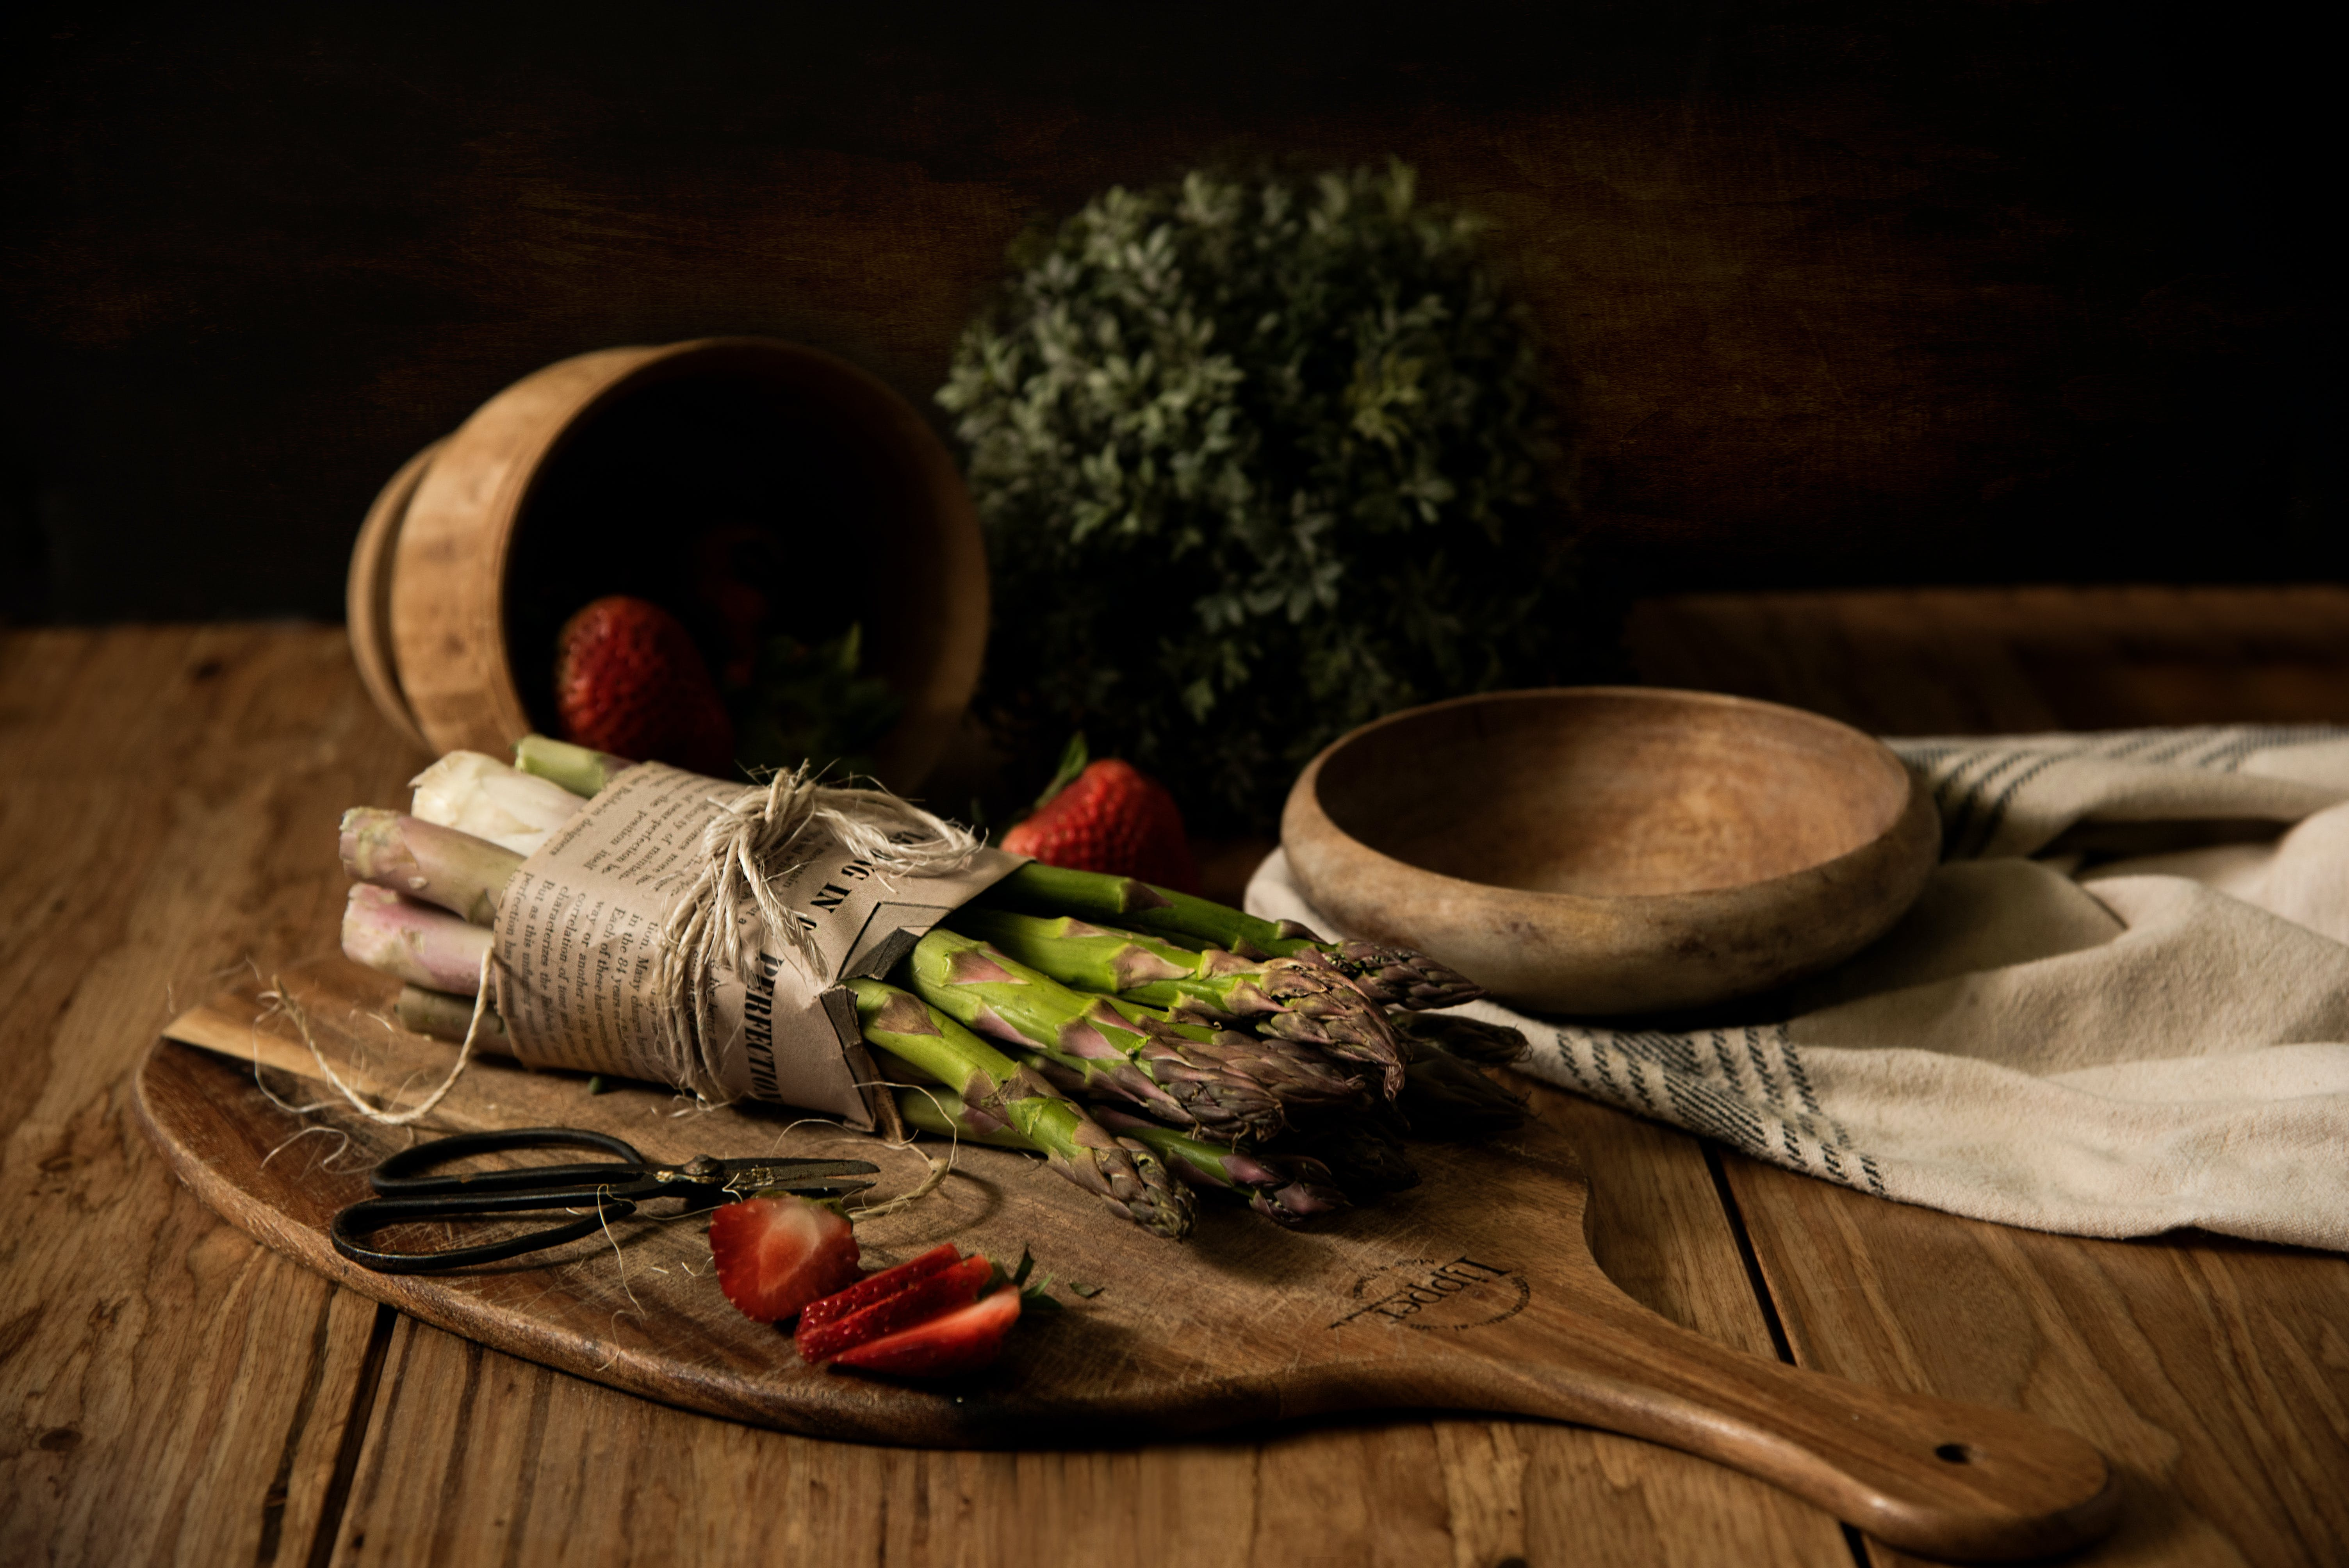 Asparagus on Wooden Board Beside Wooden Bowl